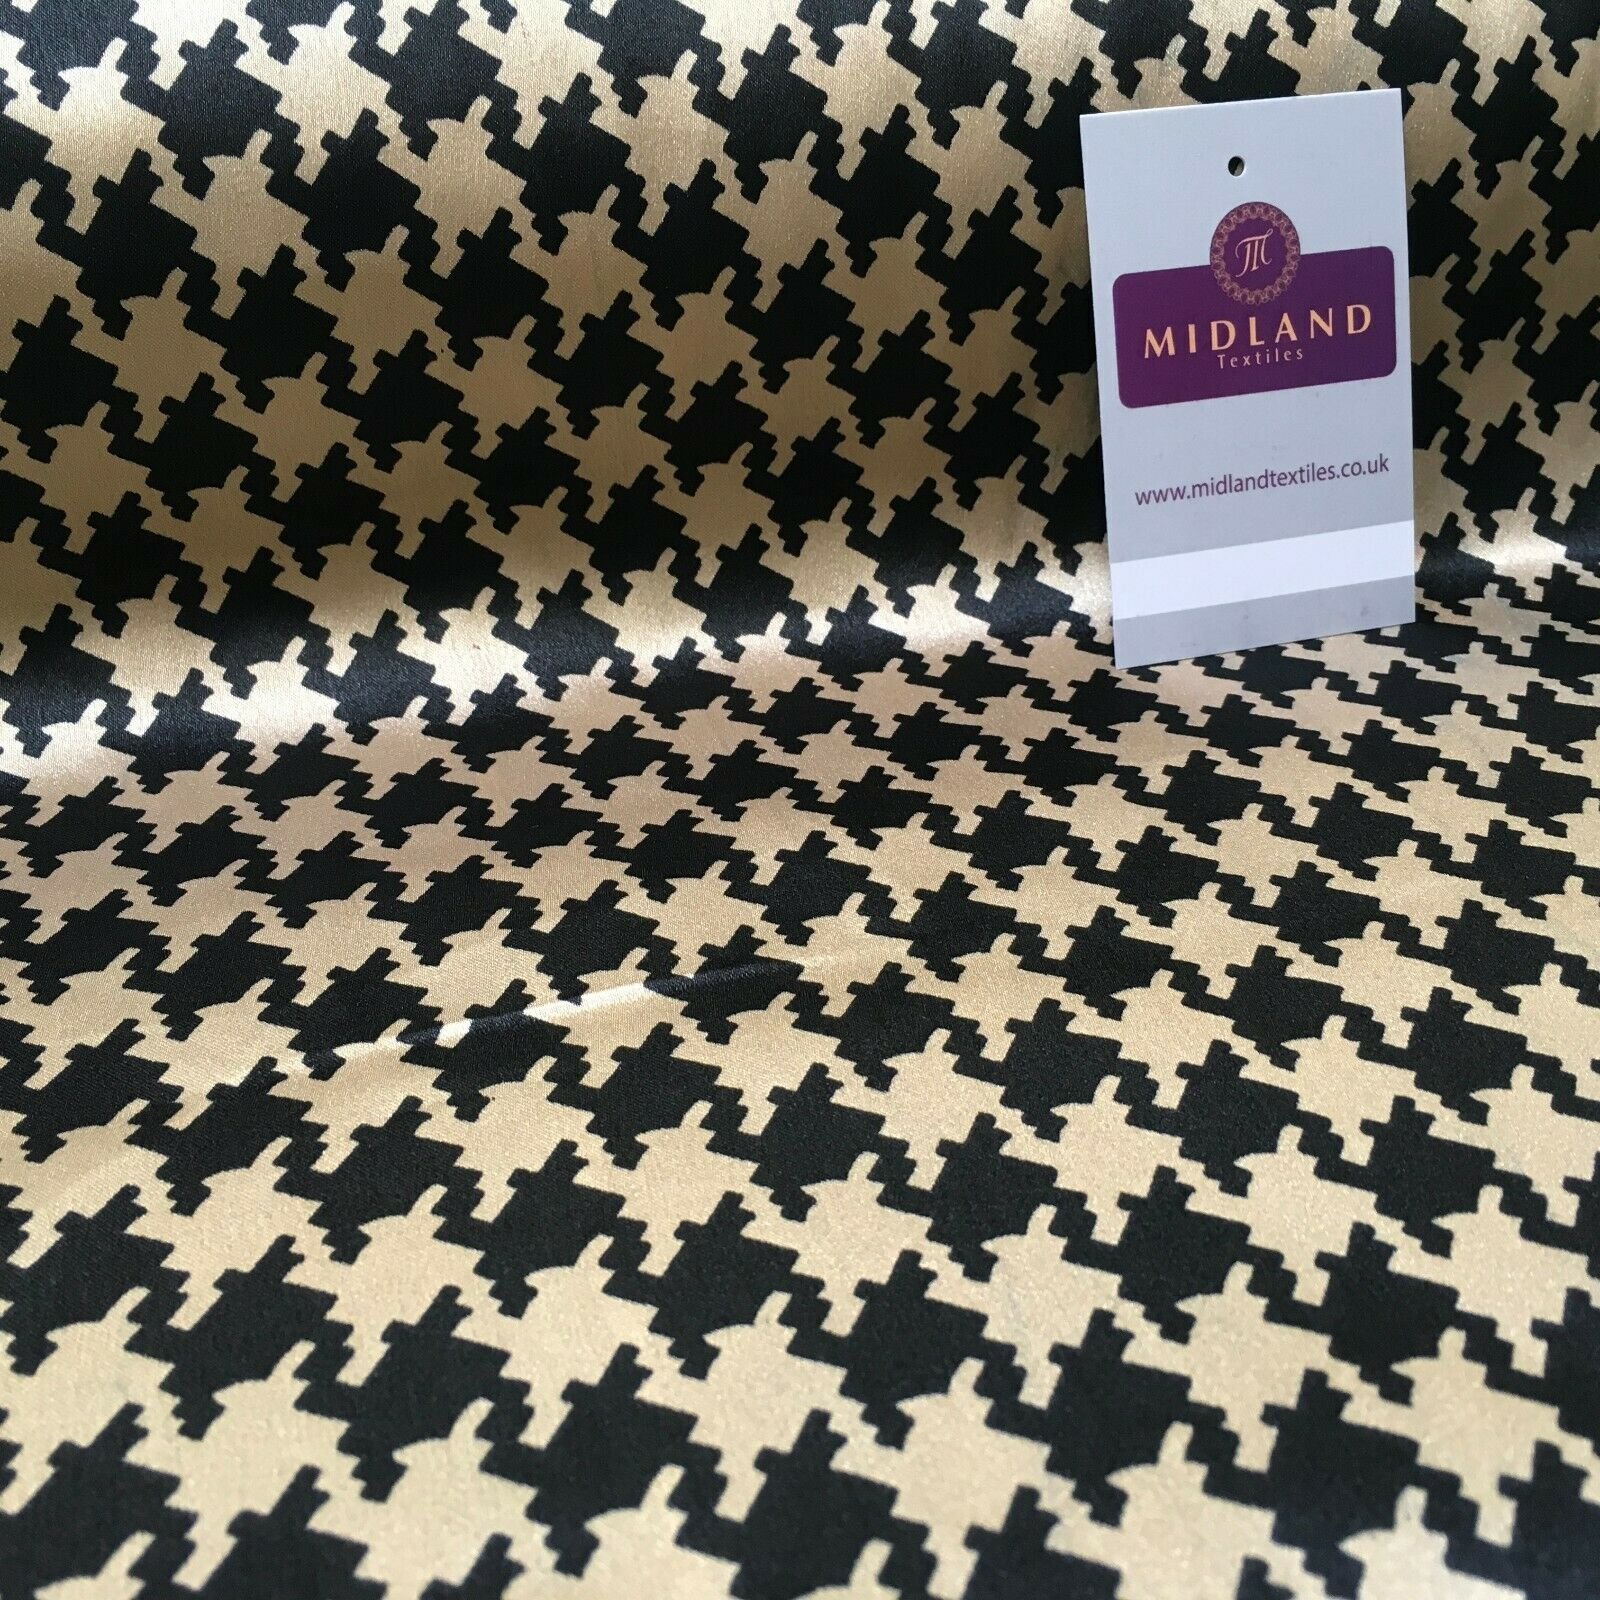 Black and Gold Dogtooth Printed Silky Satin Dress Fabric 150cm Wide MR1044-1